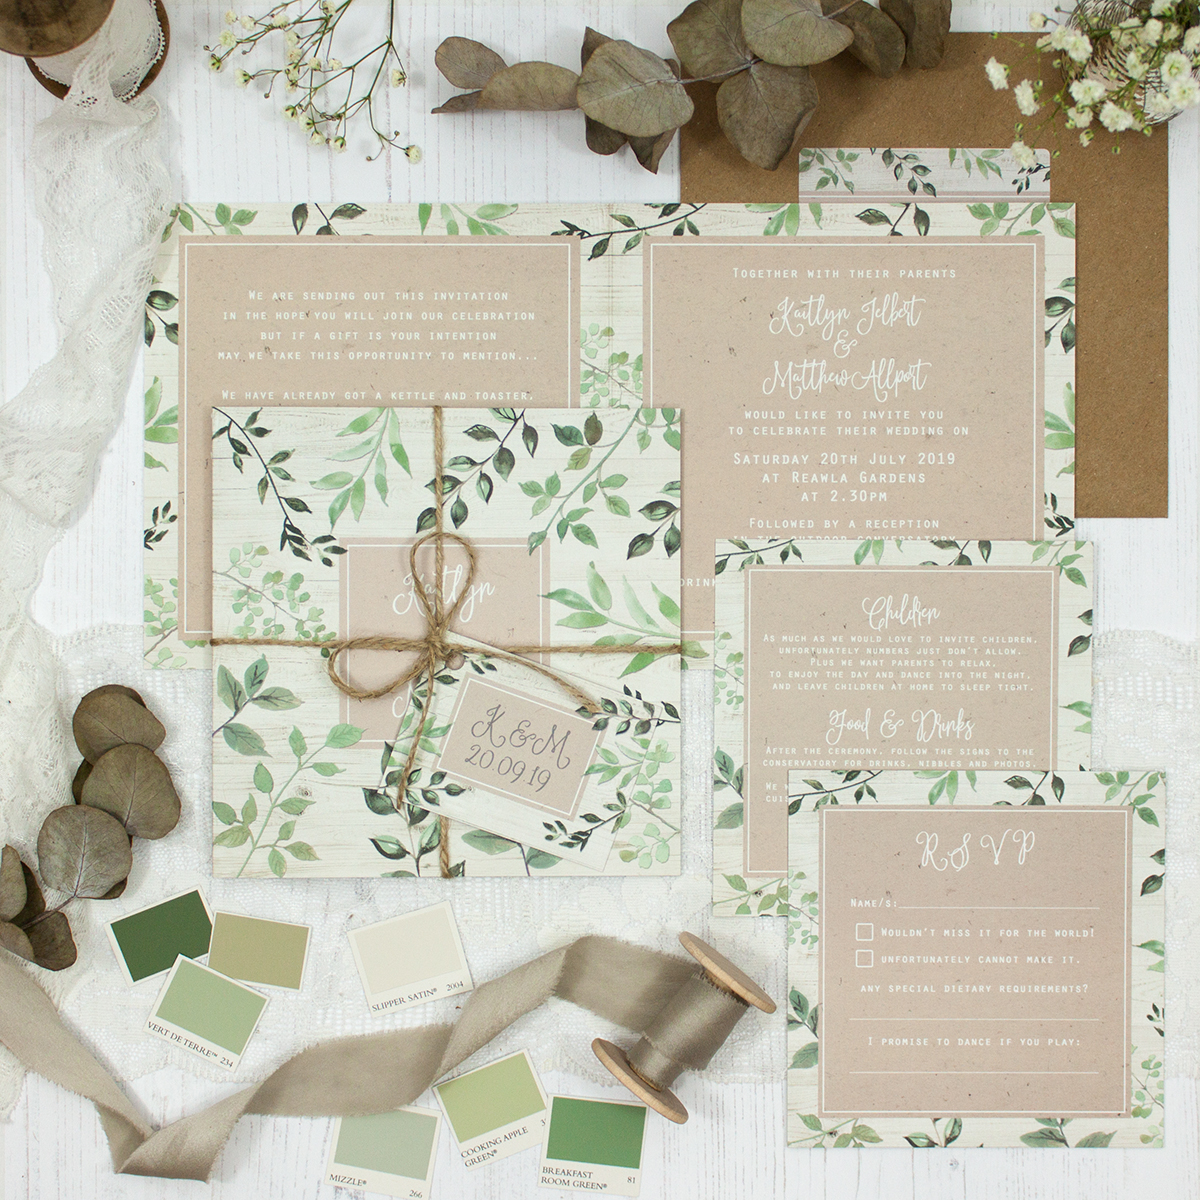 Evergreen Forest Wedding showing invitation